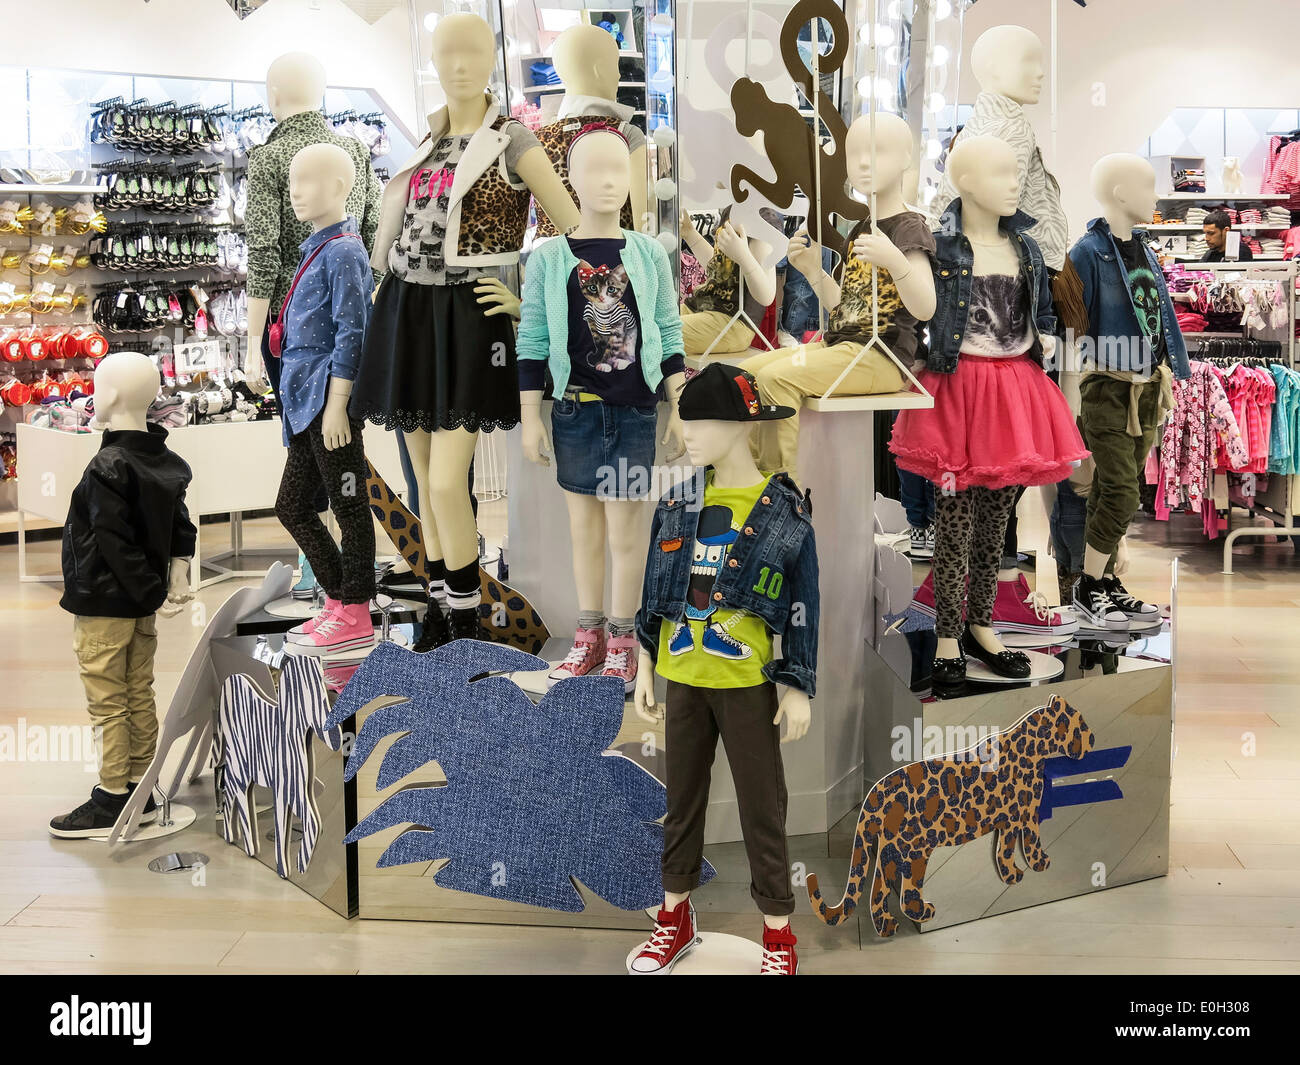 H&M is a Swedish retail clothing company known for bringing fashion and quality at the best prices. They provide clothing for men, women and children of all ages along with accessories and cosmetics. Reviews show that H&M's trendy fashions and quality of their products is .